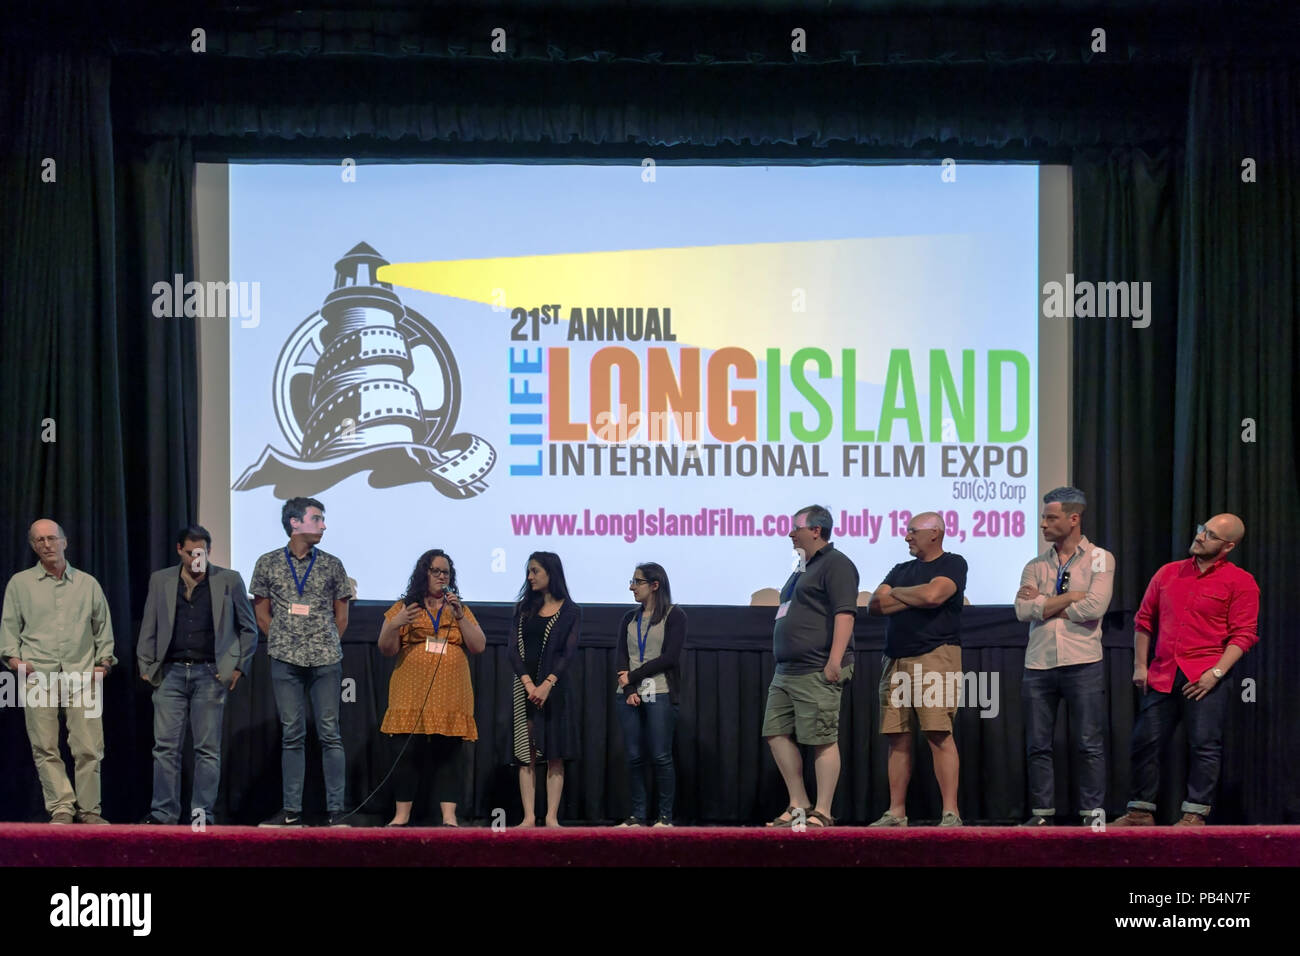 Bellmore, New York, USA. July 18, 2018. After final block of film screenings at LIIFE 2018, the Long Island International Film Expo, filmmakers and actors go on stage for Q&A at Bellmore Movies. SHARA ASHLEY ZEIGER, speaking into mic, is producer and writer of romcom short film JOE; right of her are AJNA JAI, who plays title character in The Adventures of Penny Patterson; and STEPHANIE DONNELLY, writer and director of that film. Stock Photo